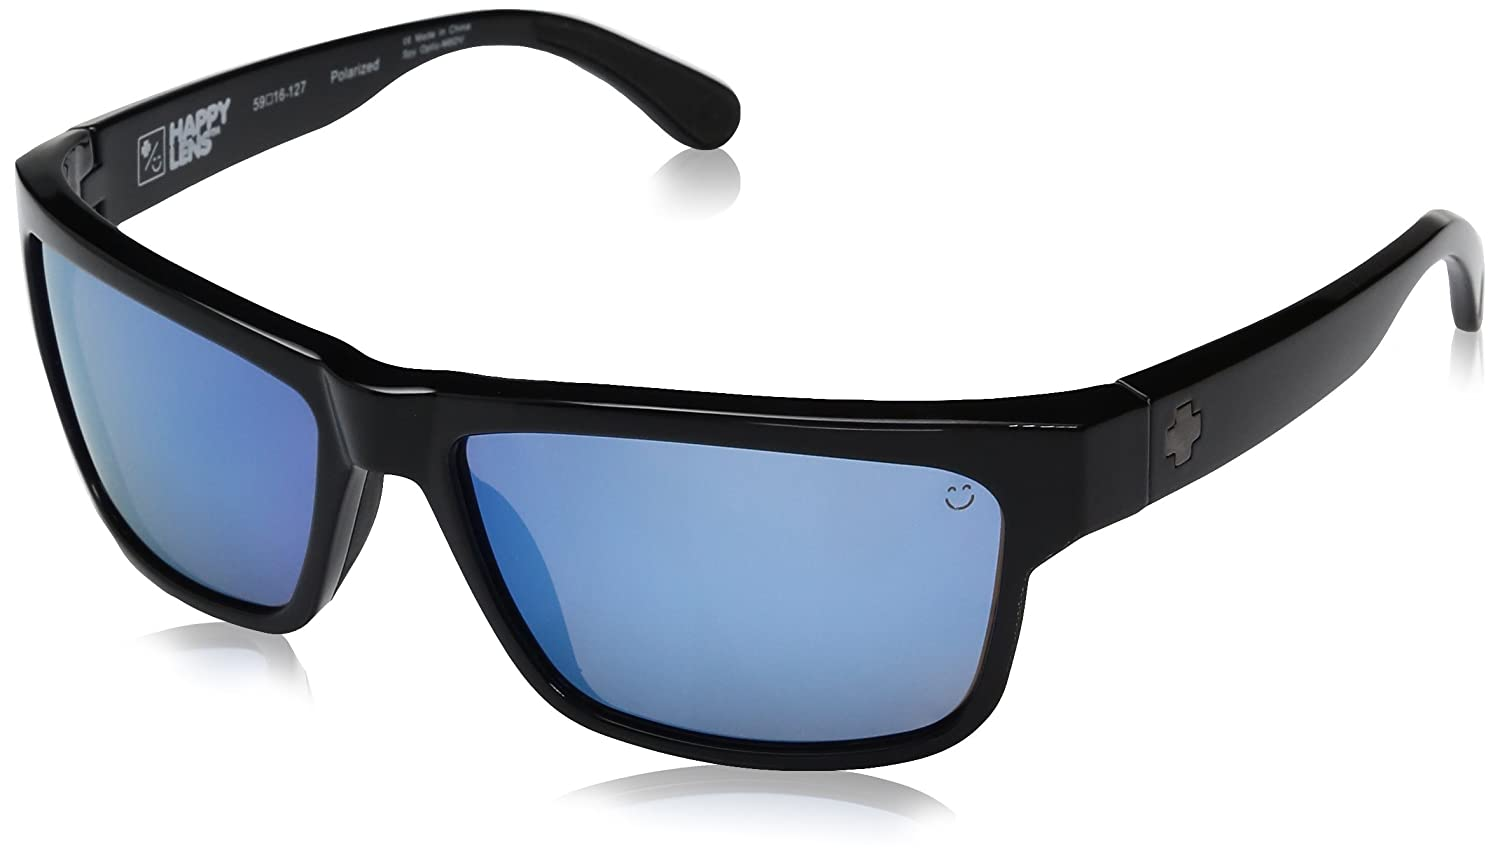 Spy Sonnenbrille FRAZIER, happy bronze polar/light blue spectra, 673176038439